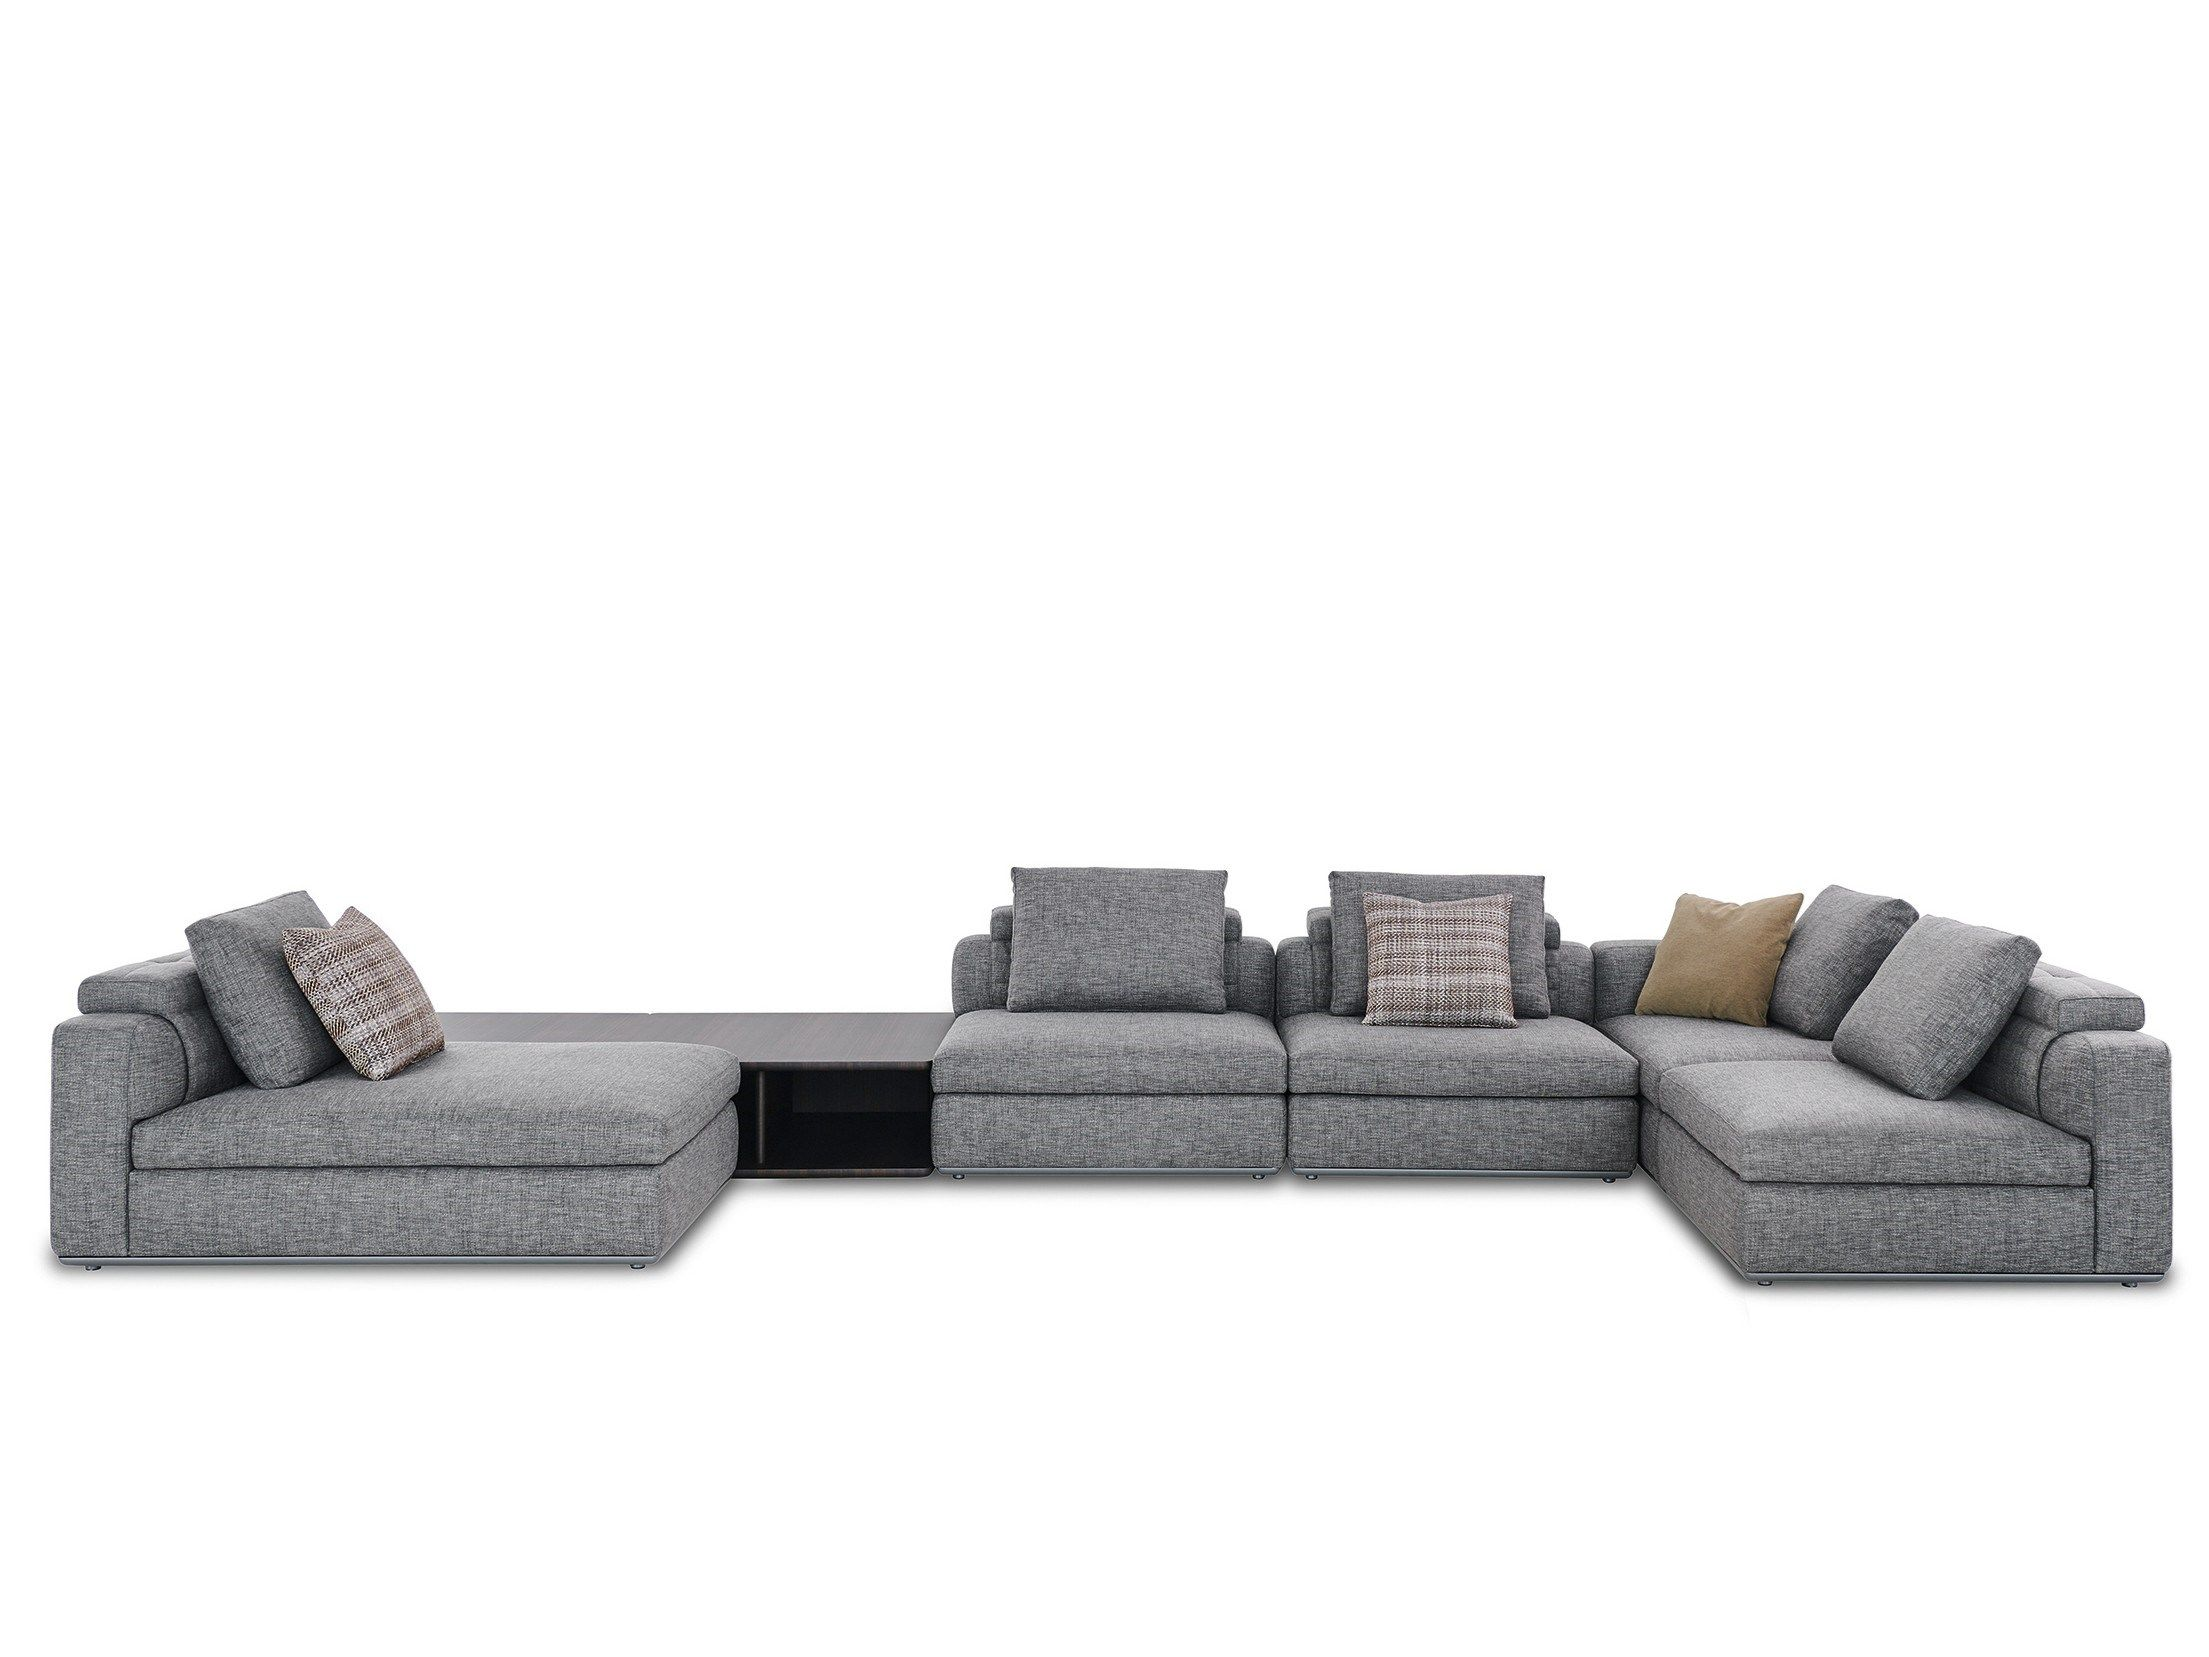 Sectional Sofa Albert By Molteni C Design Vincent Van Duysen